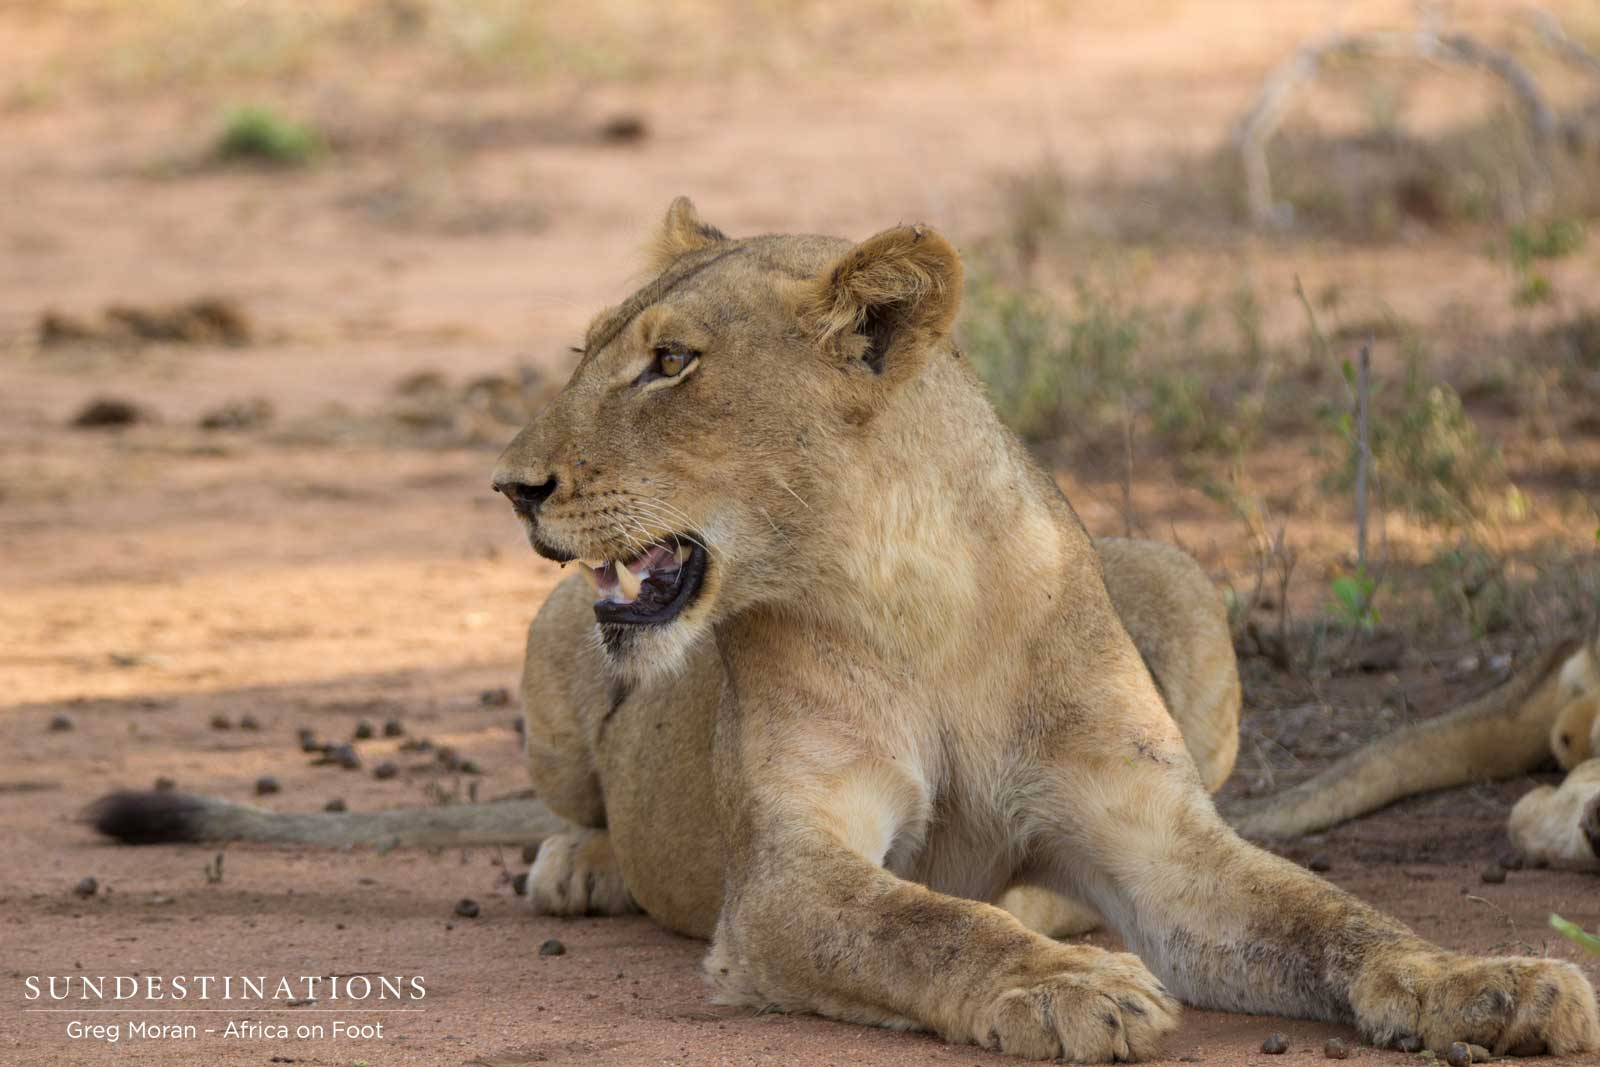 New Lions Seen on Game Drive in Klaserie